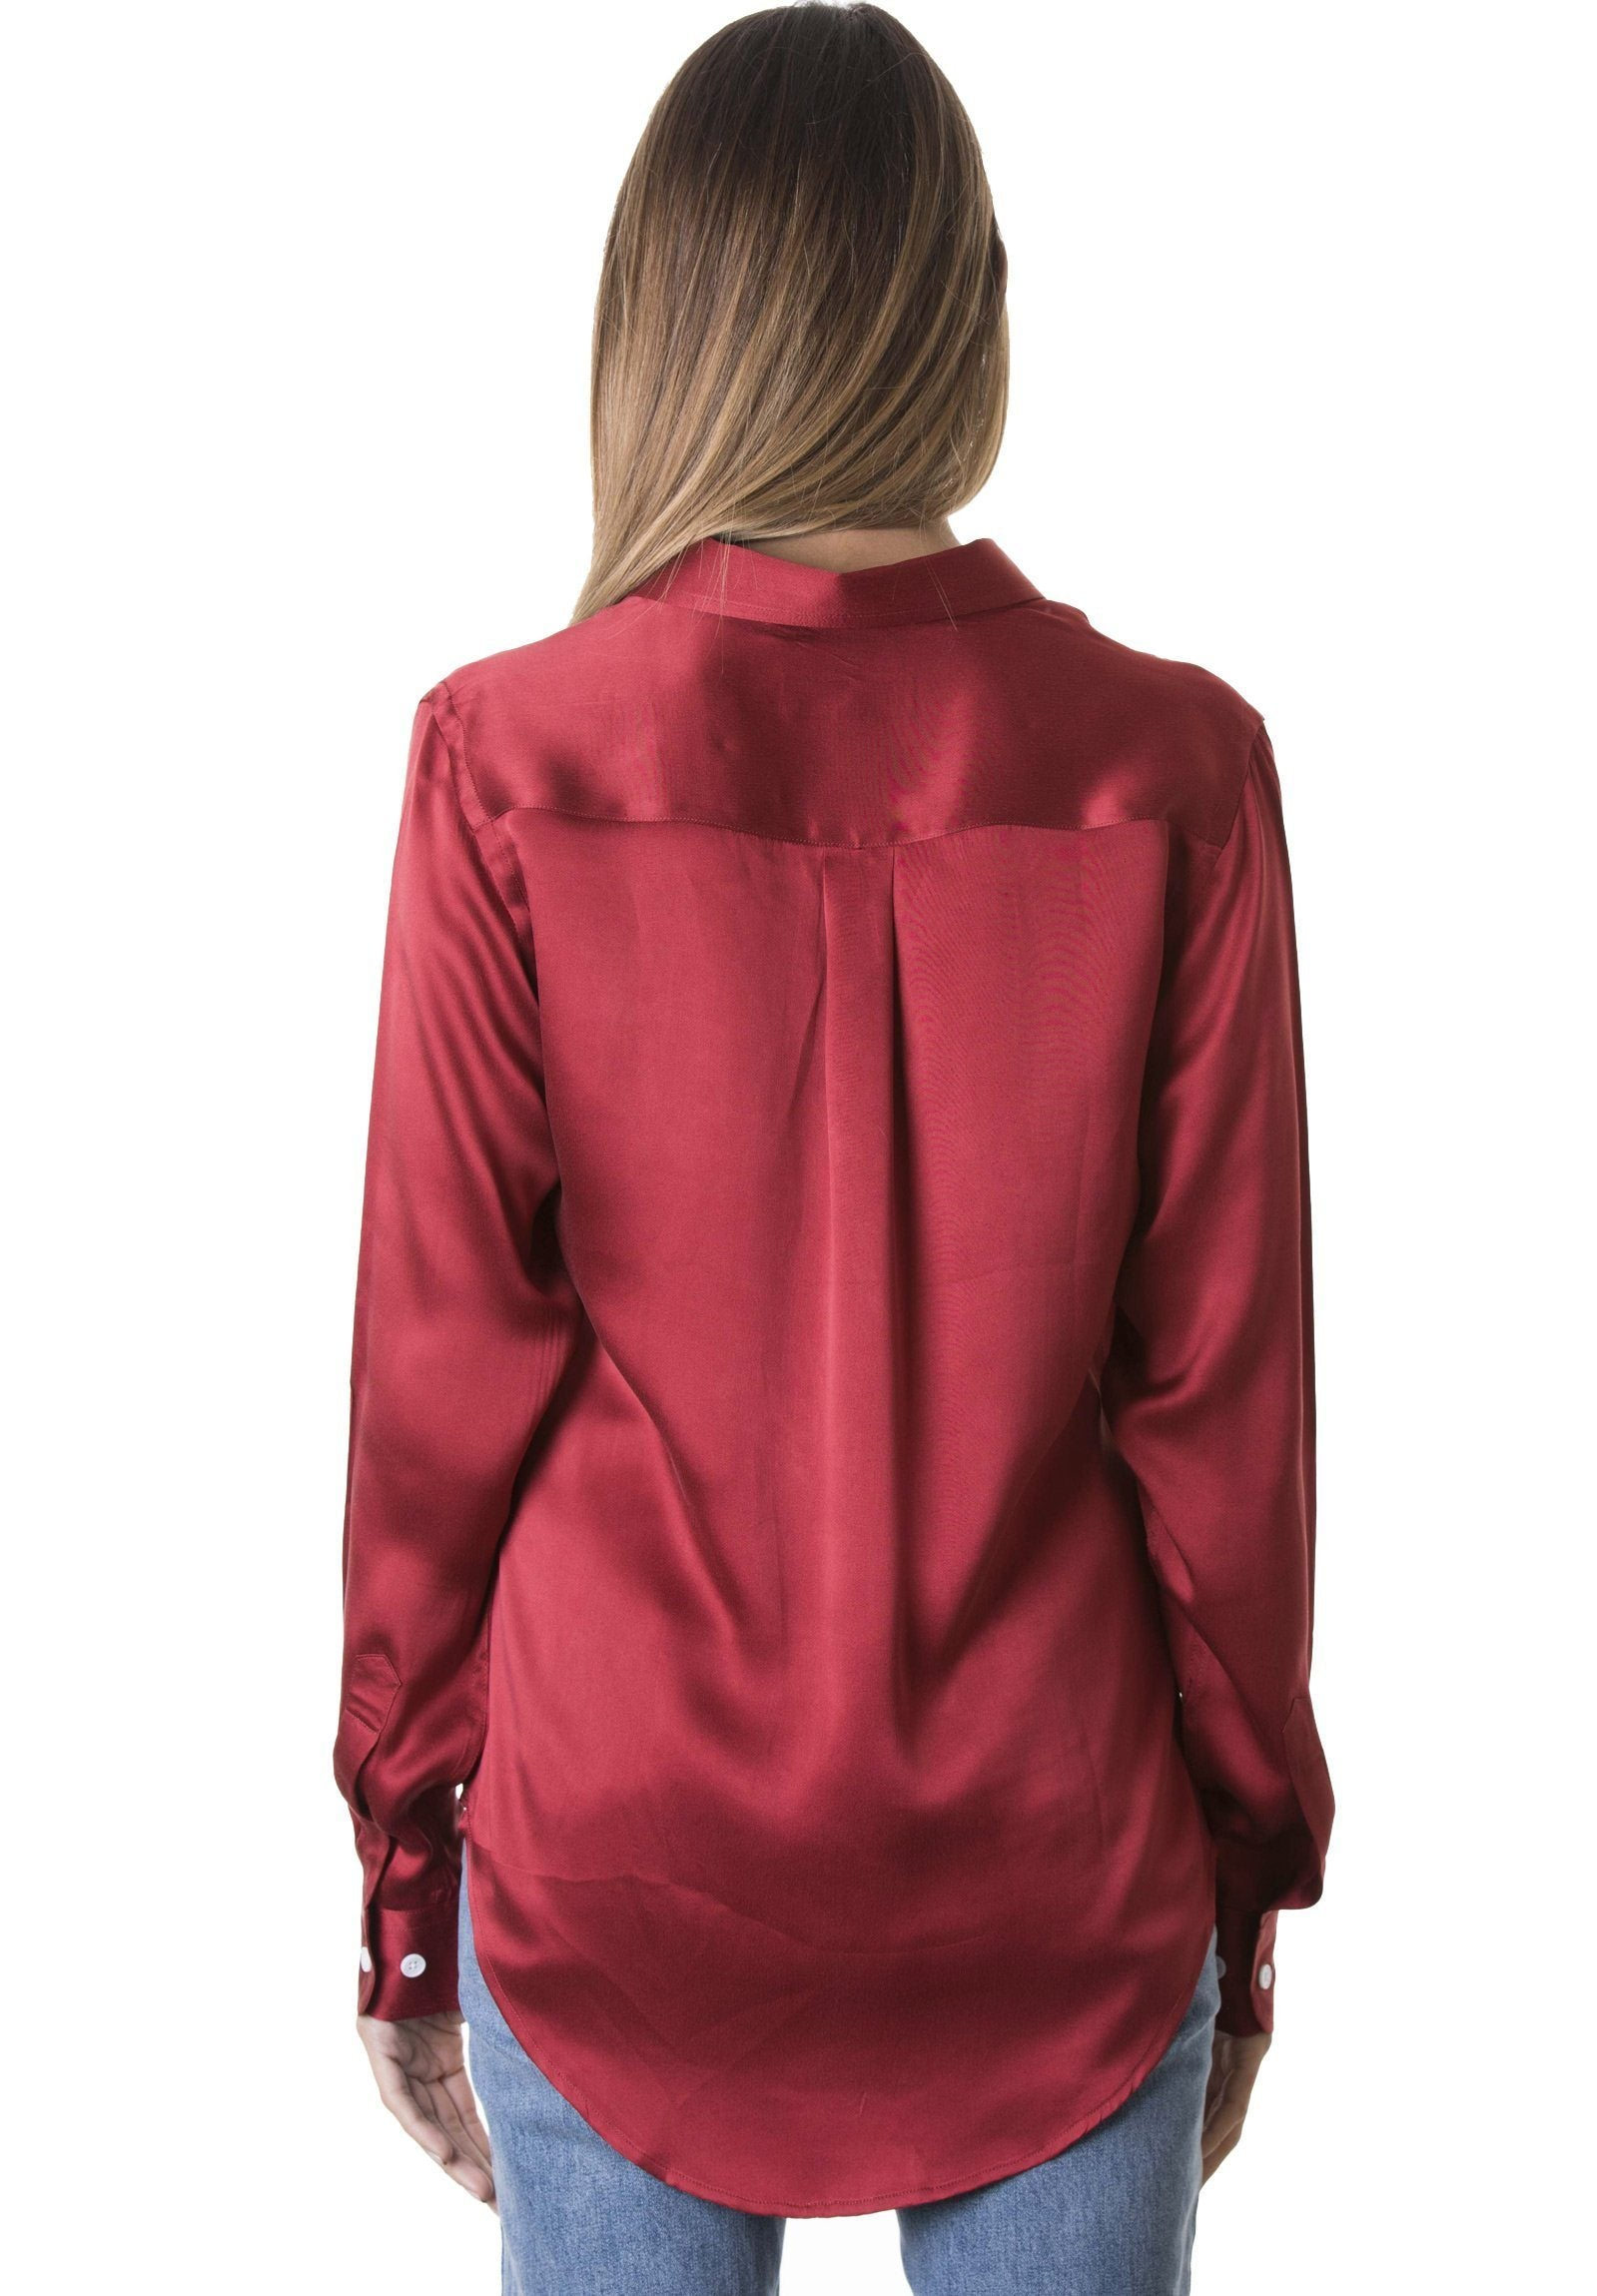 Satin Cherry Red, Pure Charmeuse Silk Shirt